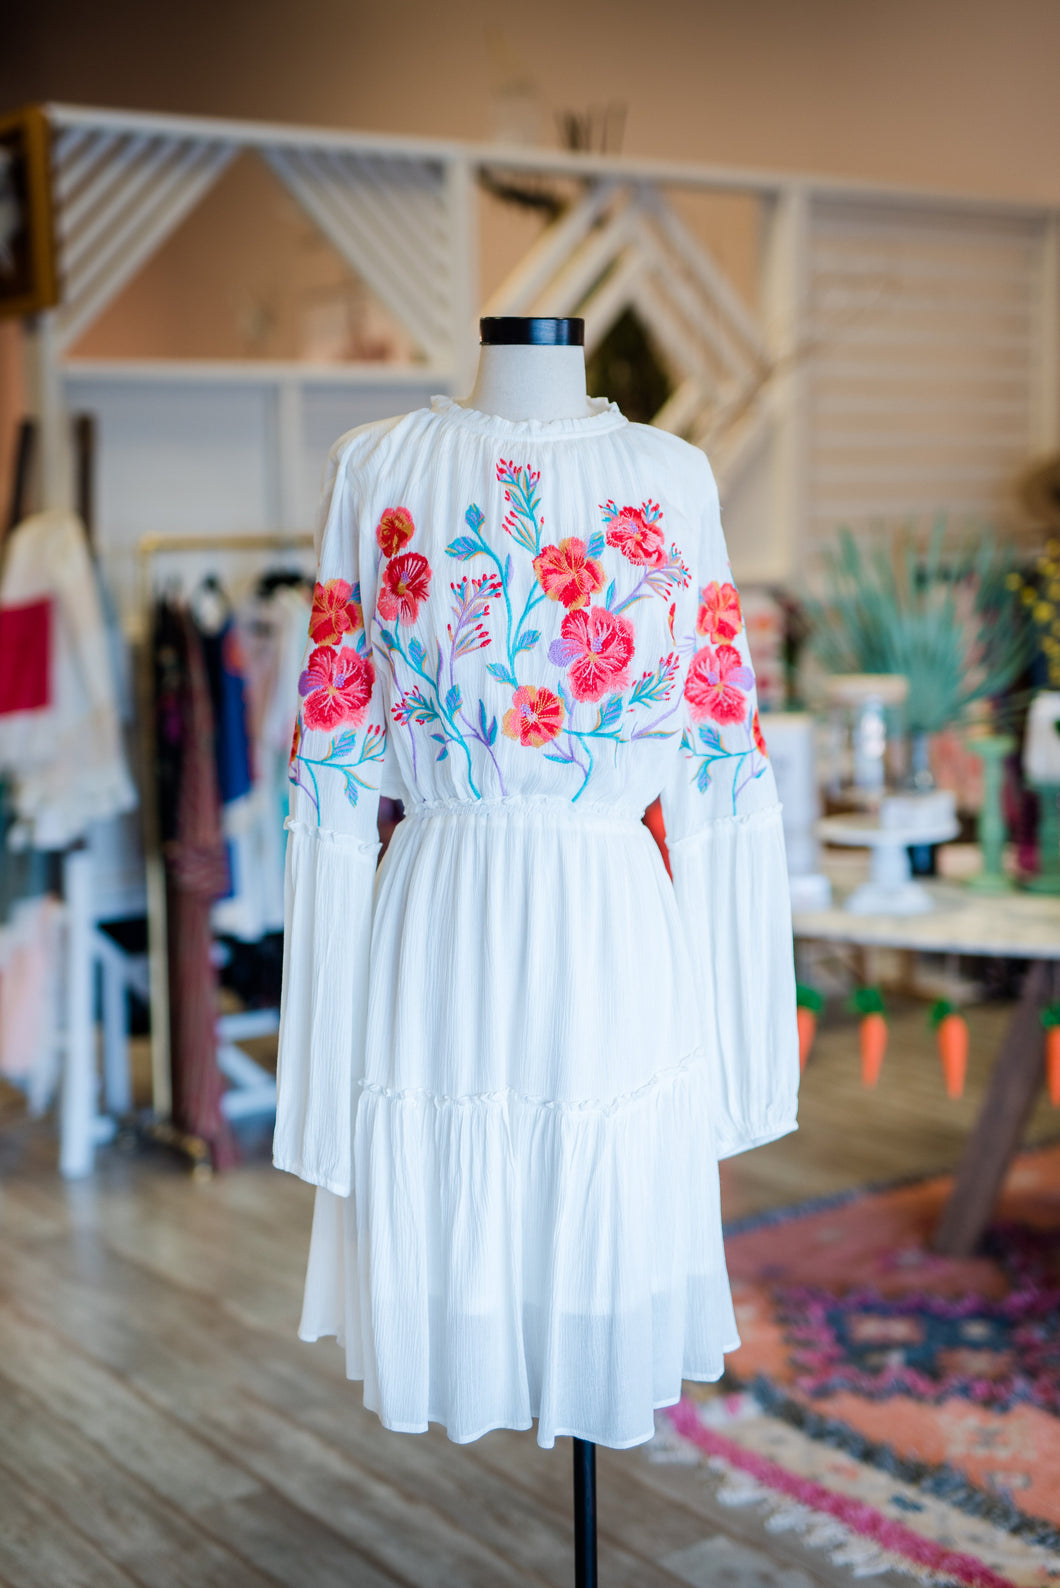 White and Colorful Floral Dress